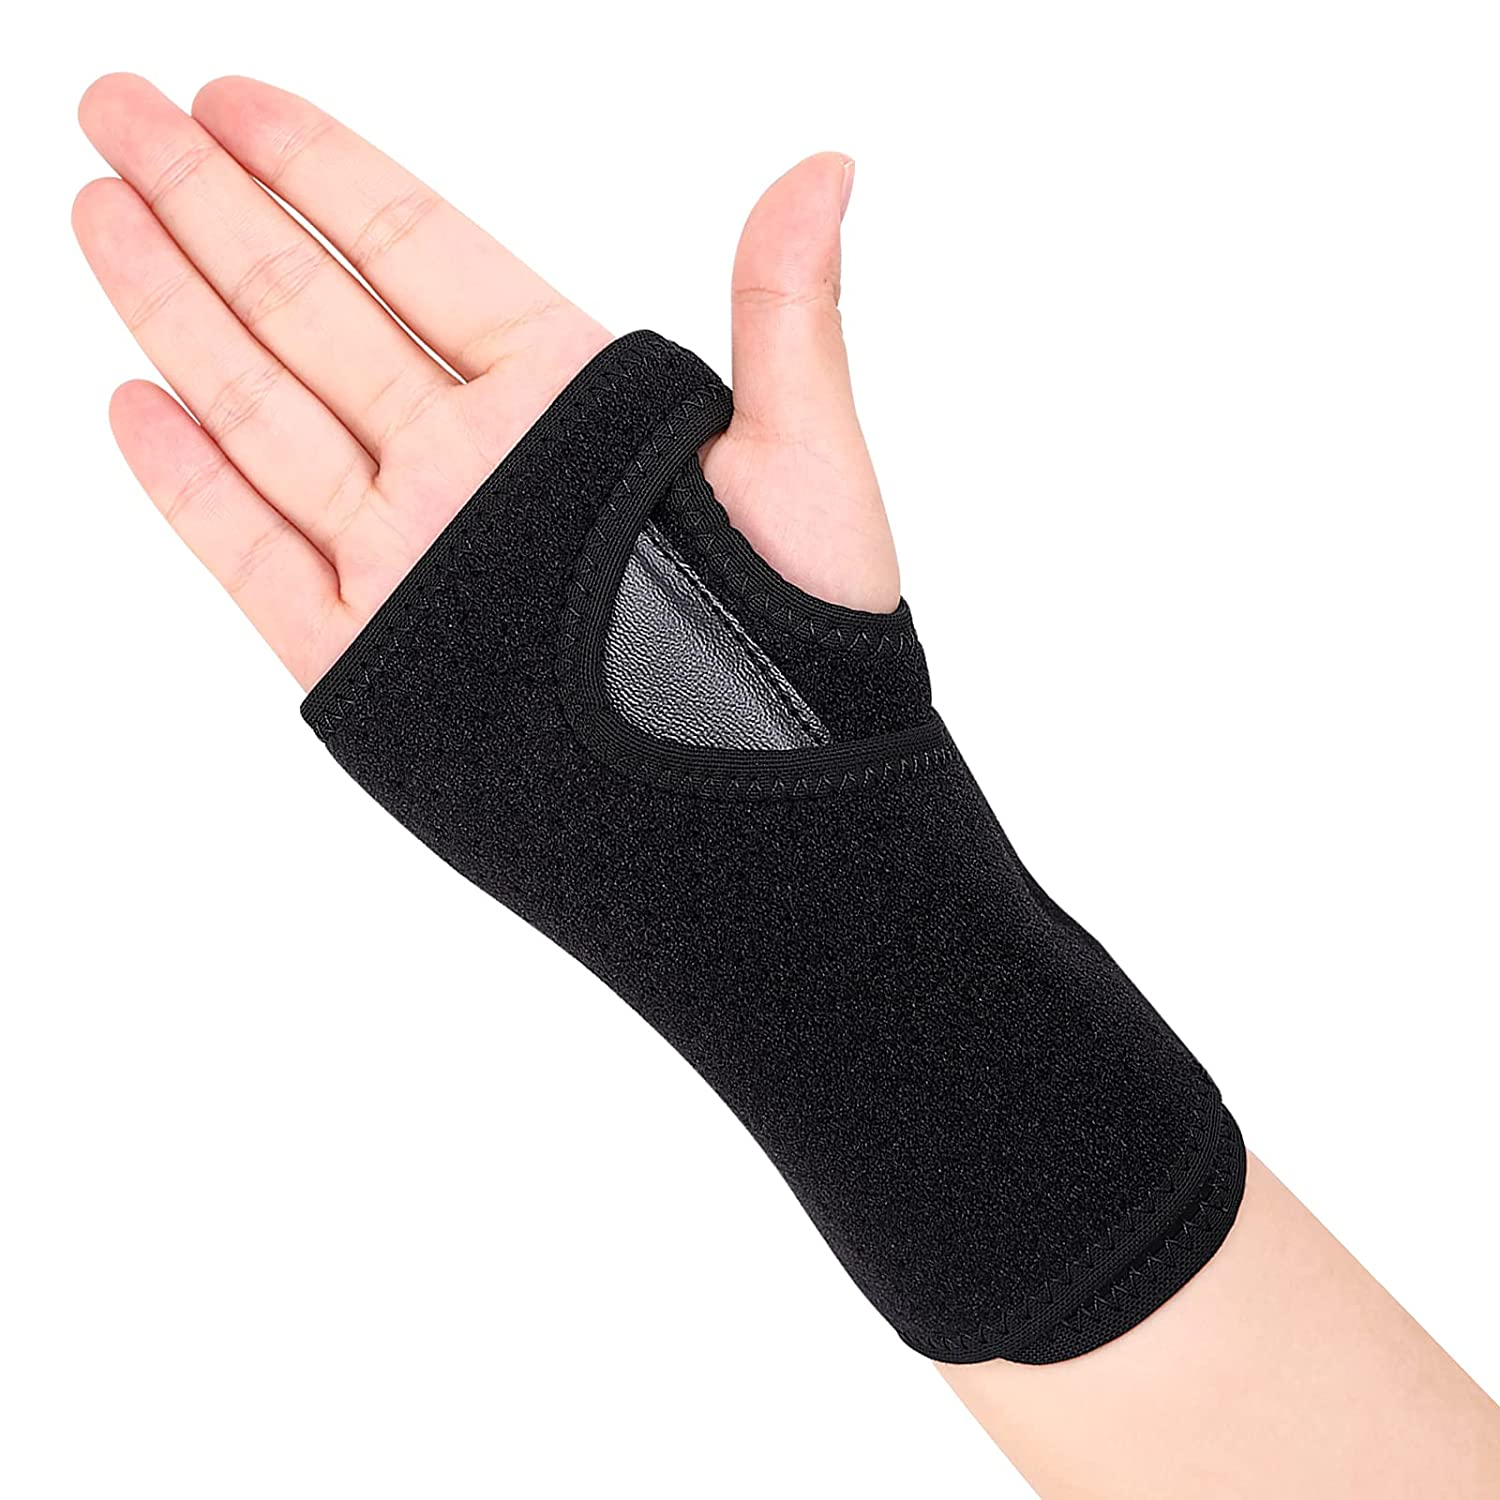 Carpal Omaha Mall Tunnel Wrist Brace Ranking TOP5 Support with Splints Adjustable